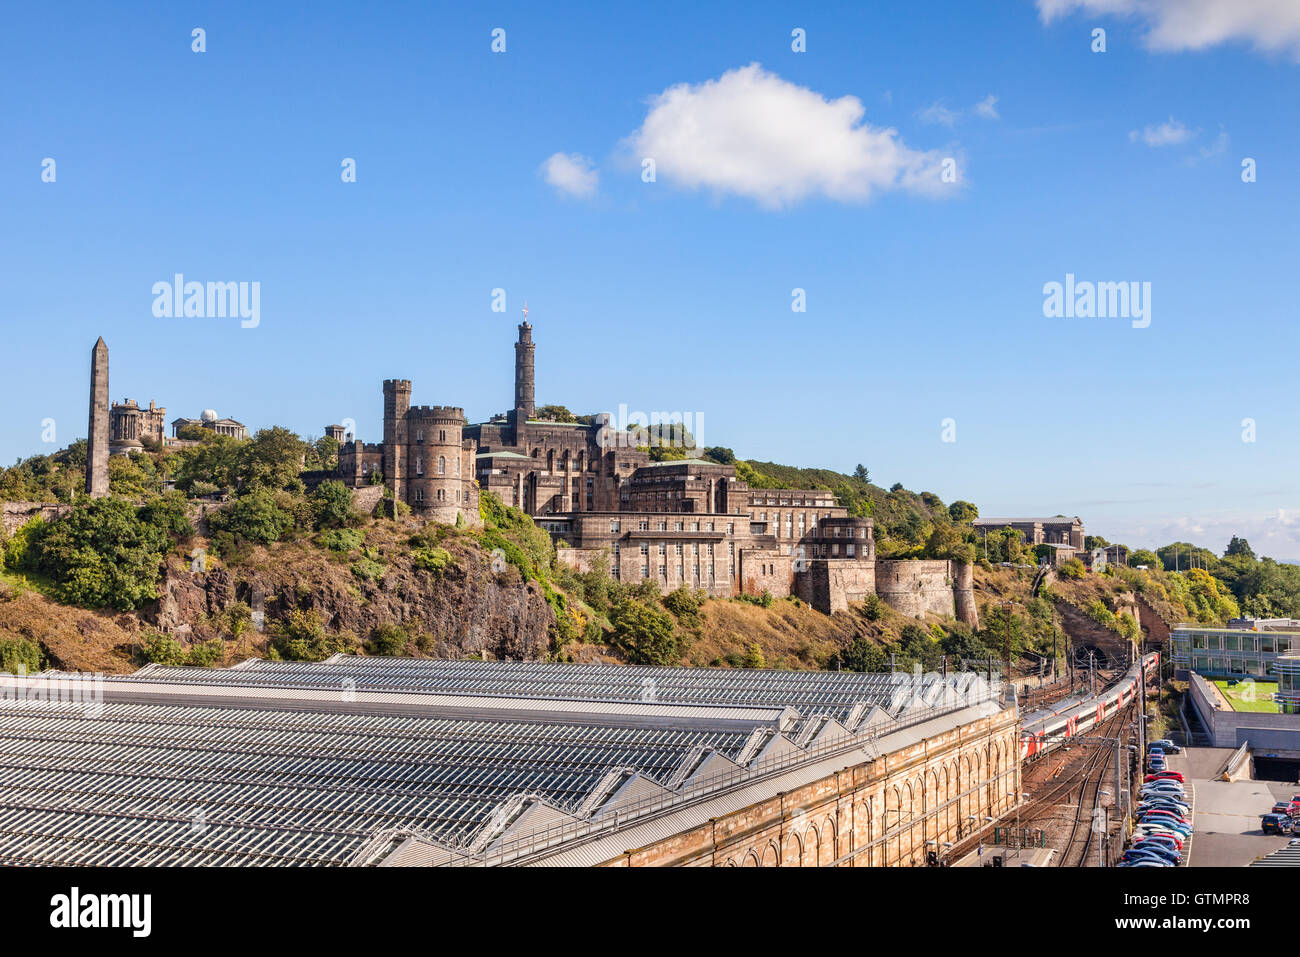 Calton Hill and Waverley Street Station, Edinburgh, Scotland, UK - Stock Image